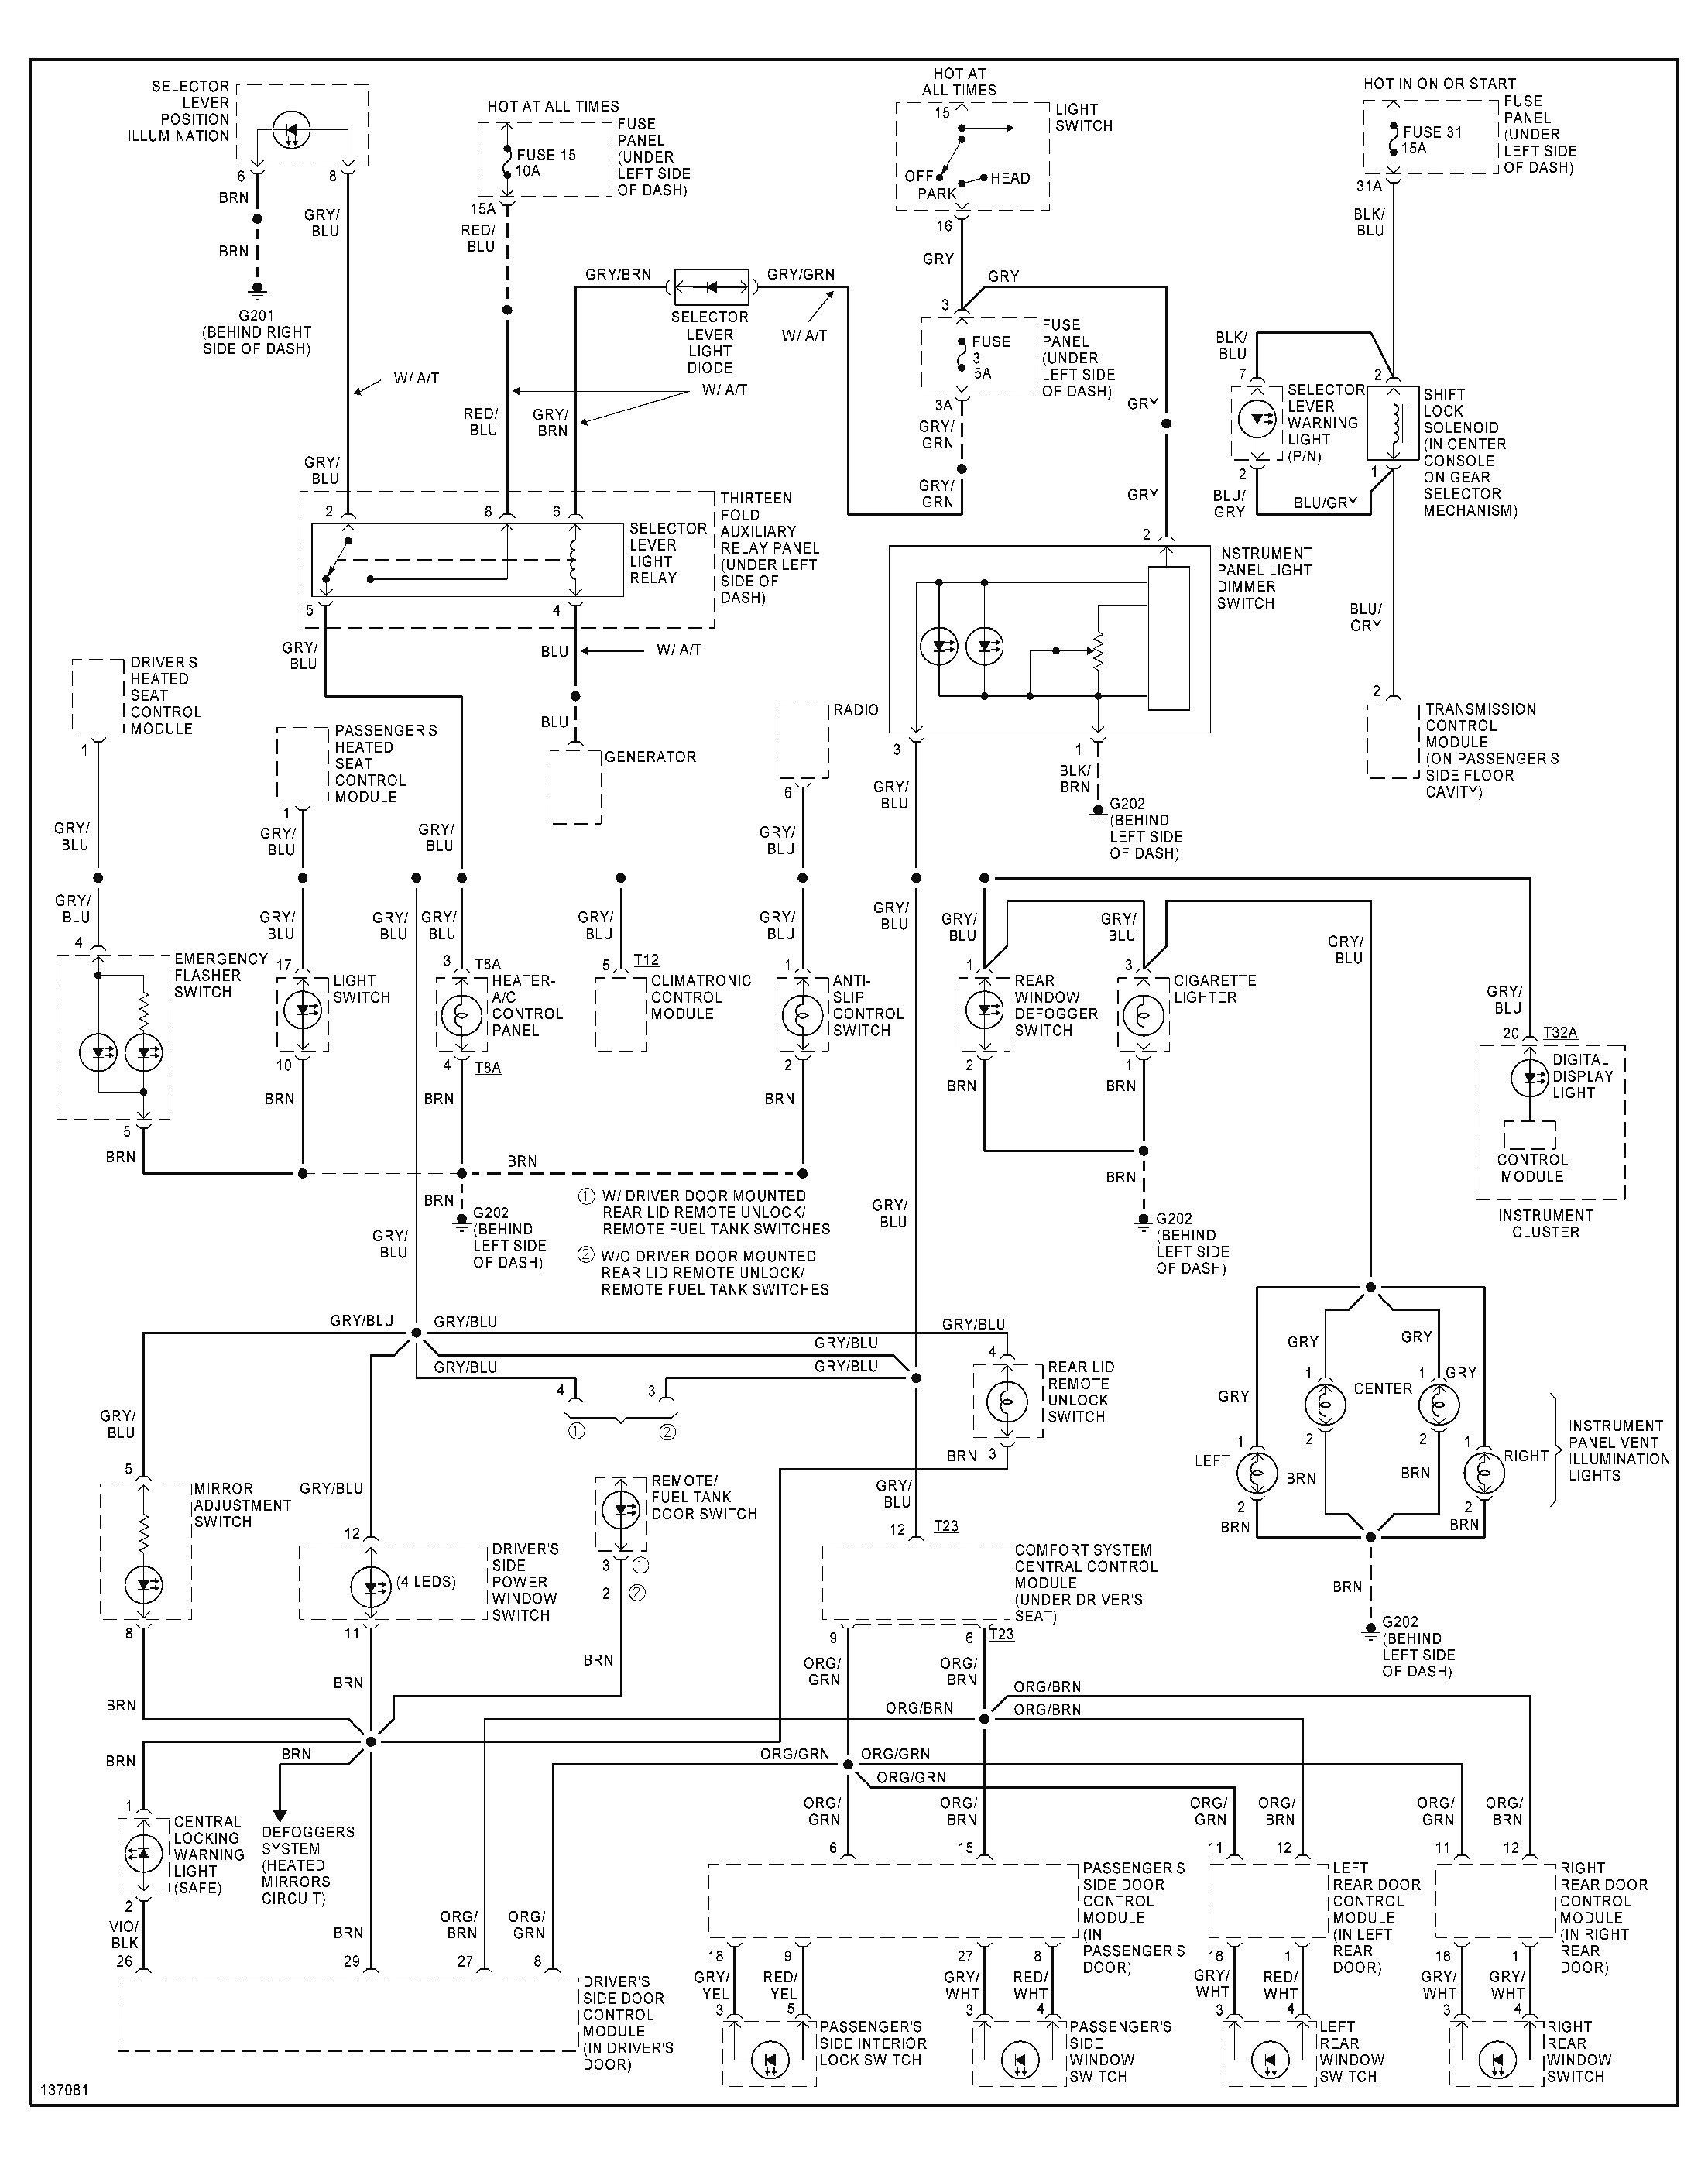 unique 2004 dodge ram 1500 headlight wiring diagram. Black Bedroom Furniture Sets. Home Design Ideas